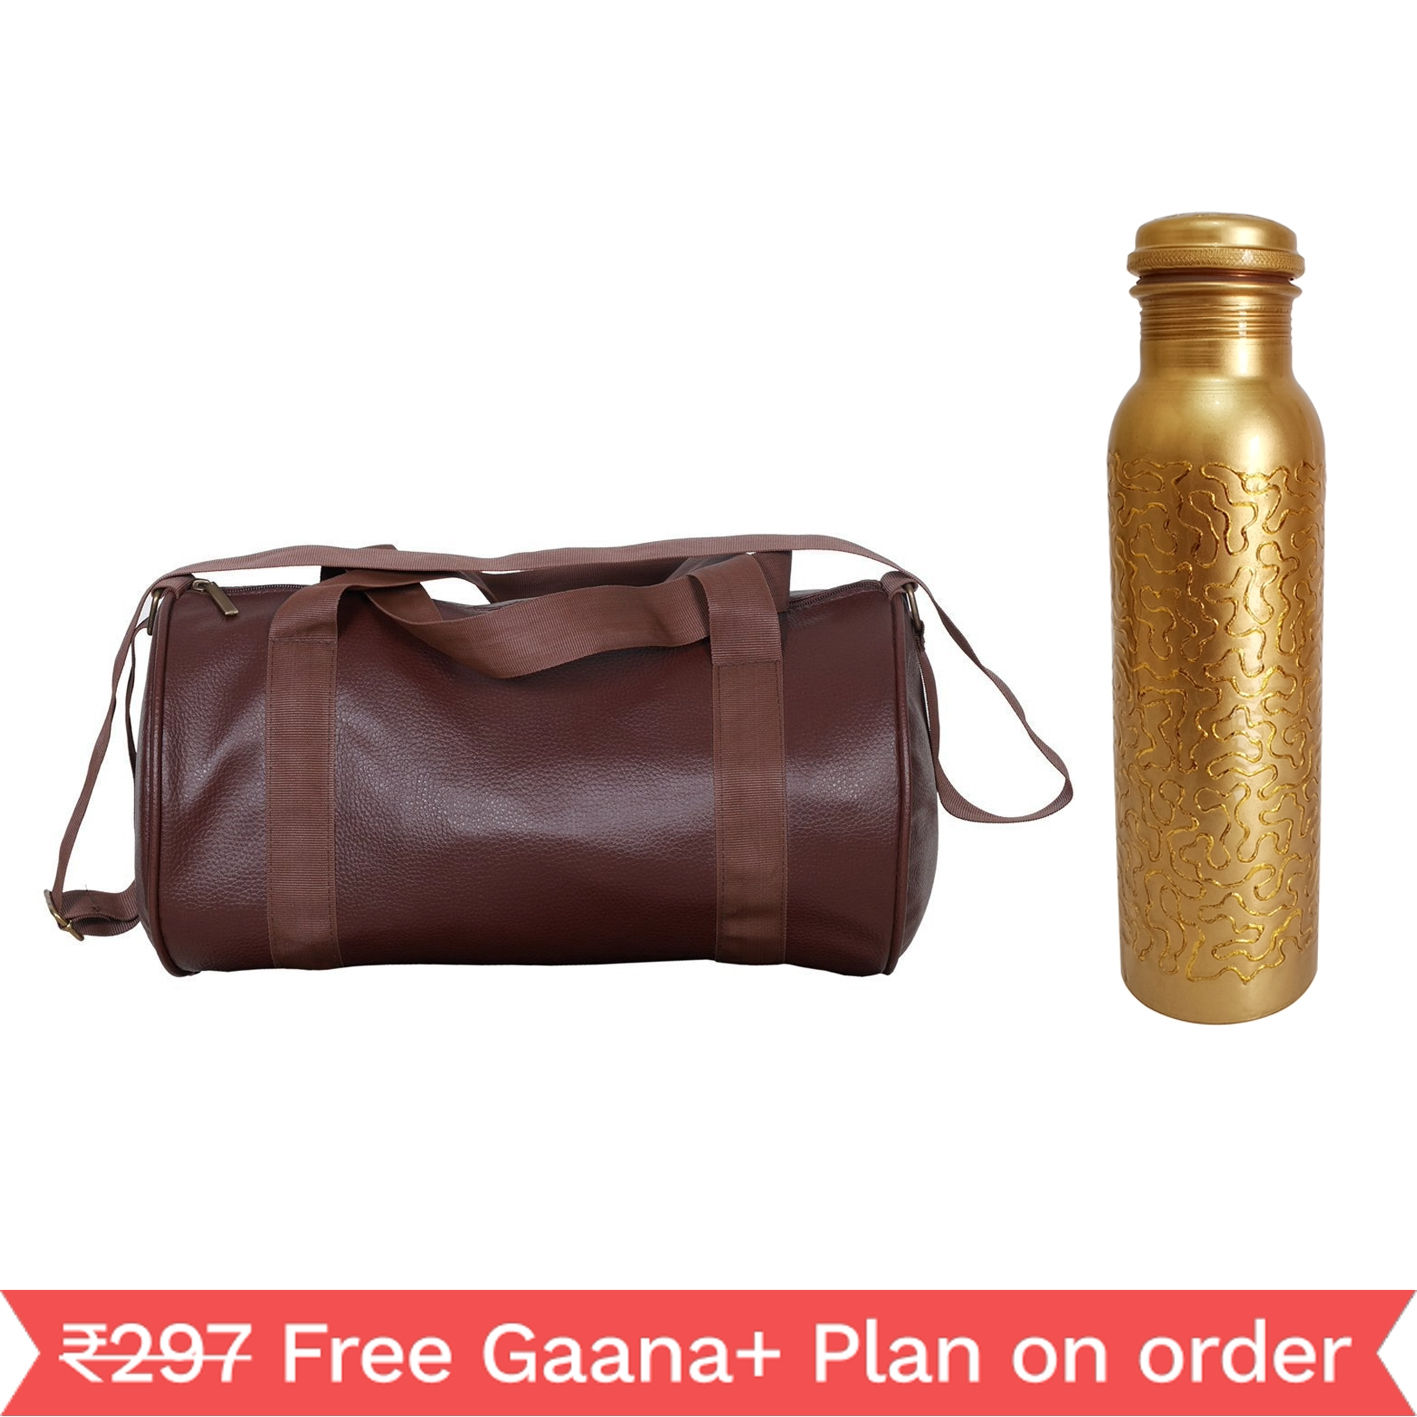 1 Copper 1000ml bottle & 1 Gym Bag - Embroided Golden   1000 GymBag Coffe